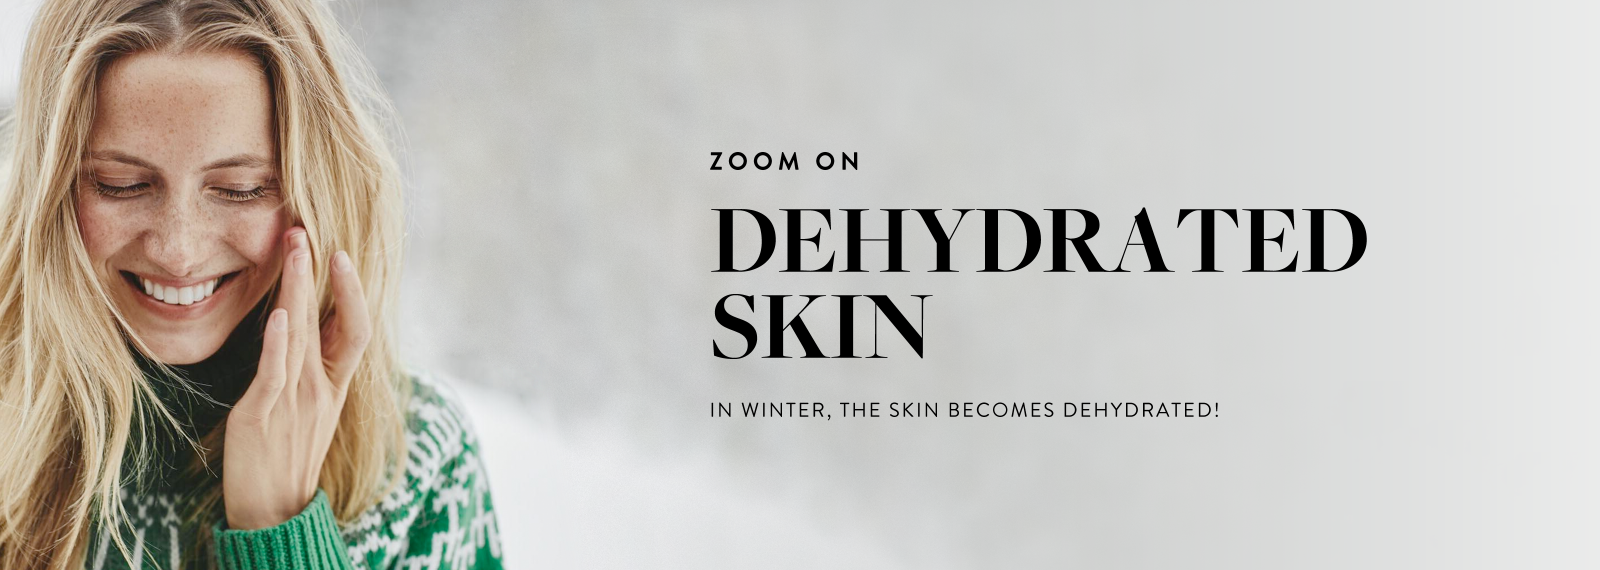 Zoom on dehydrated skins